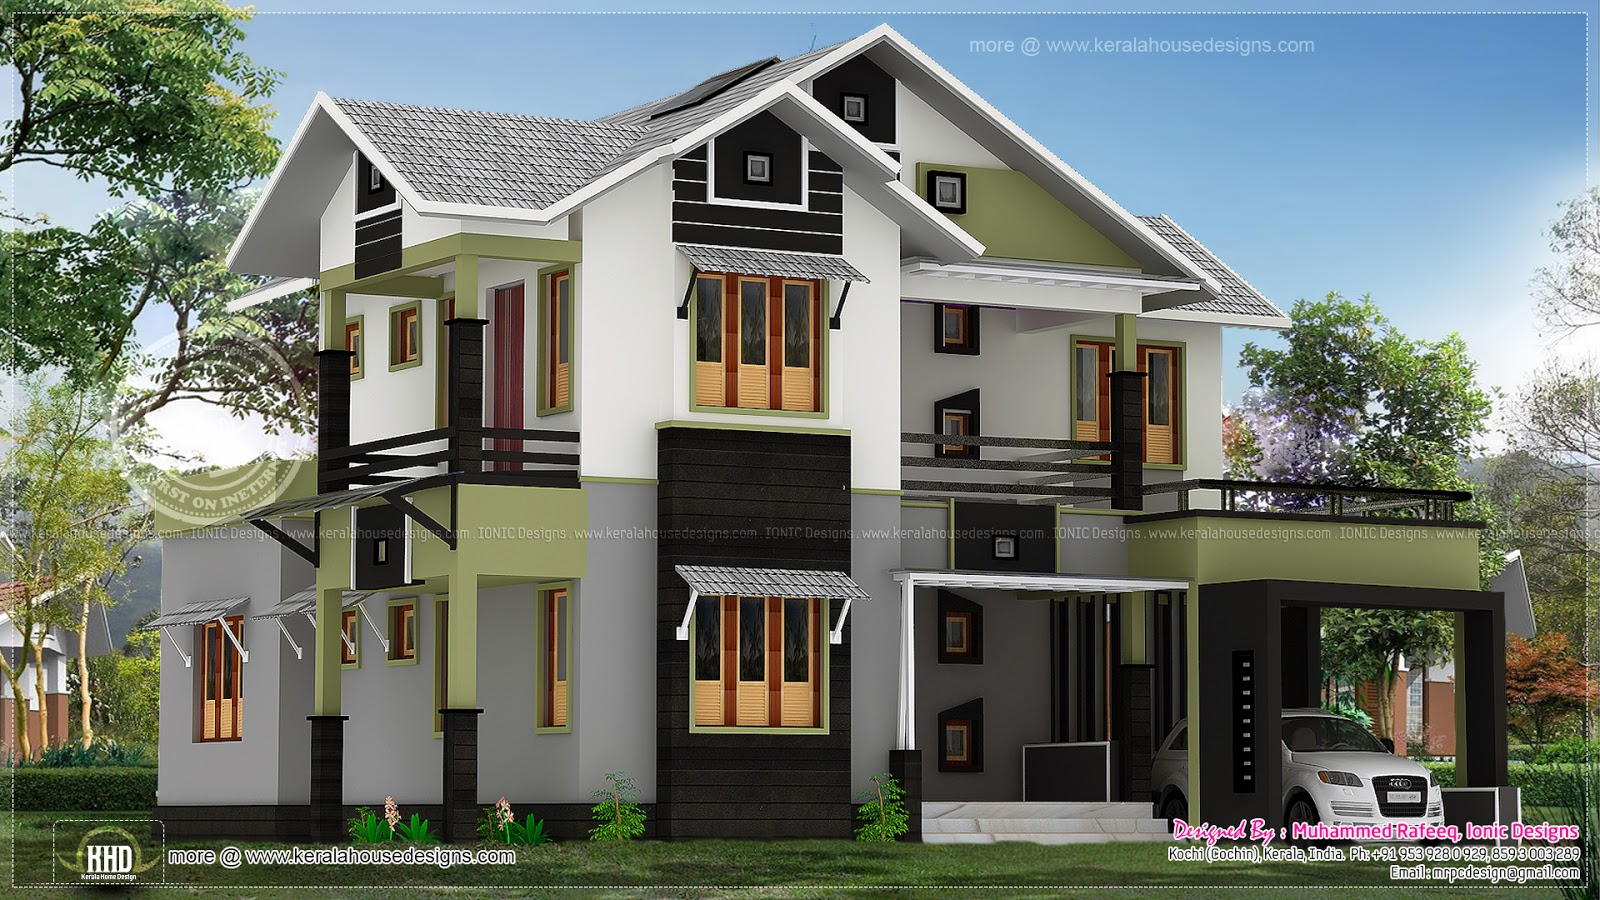 185 square meter 4 bedroom house design kerala home for Square house design